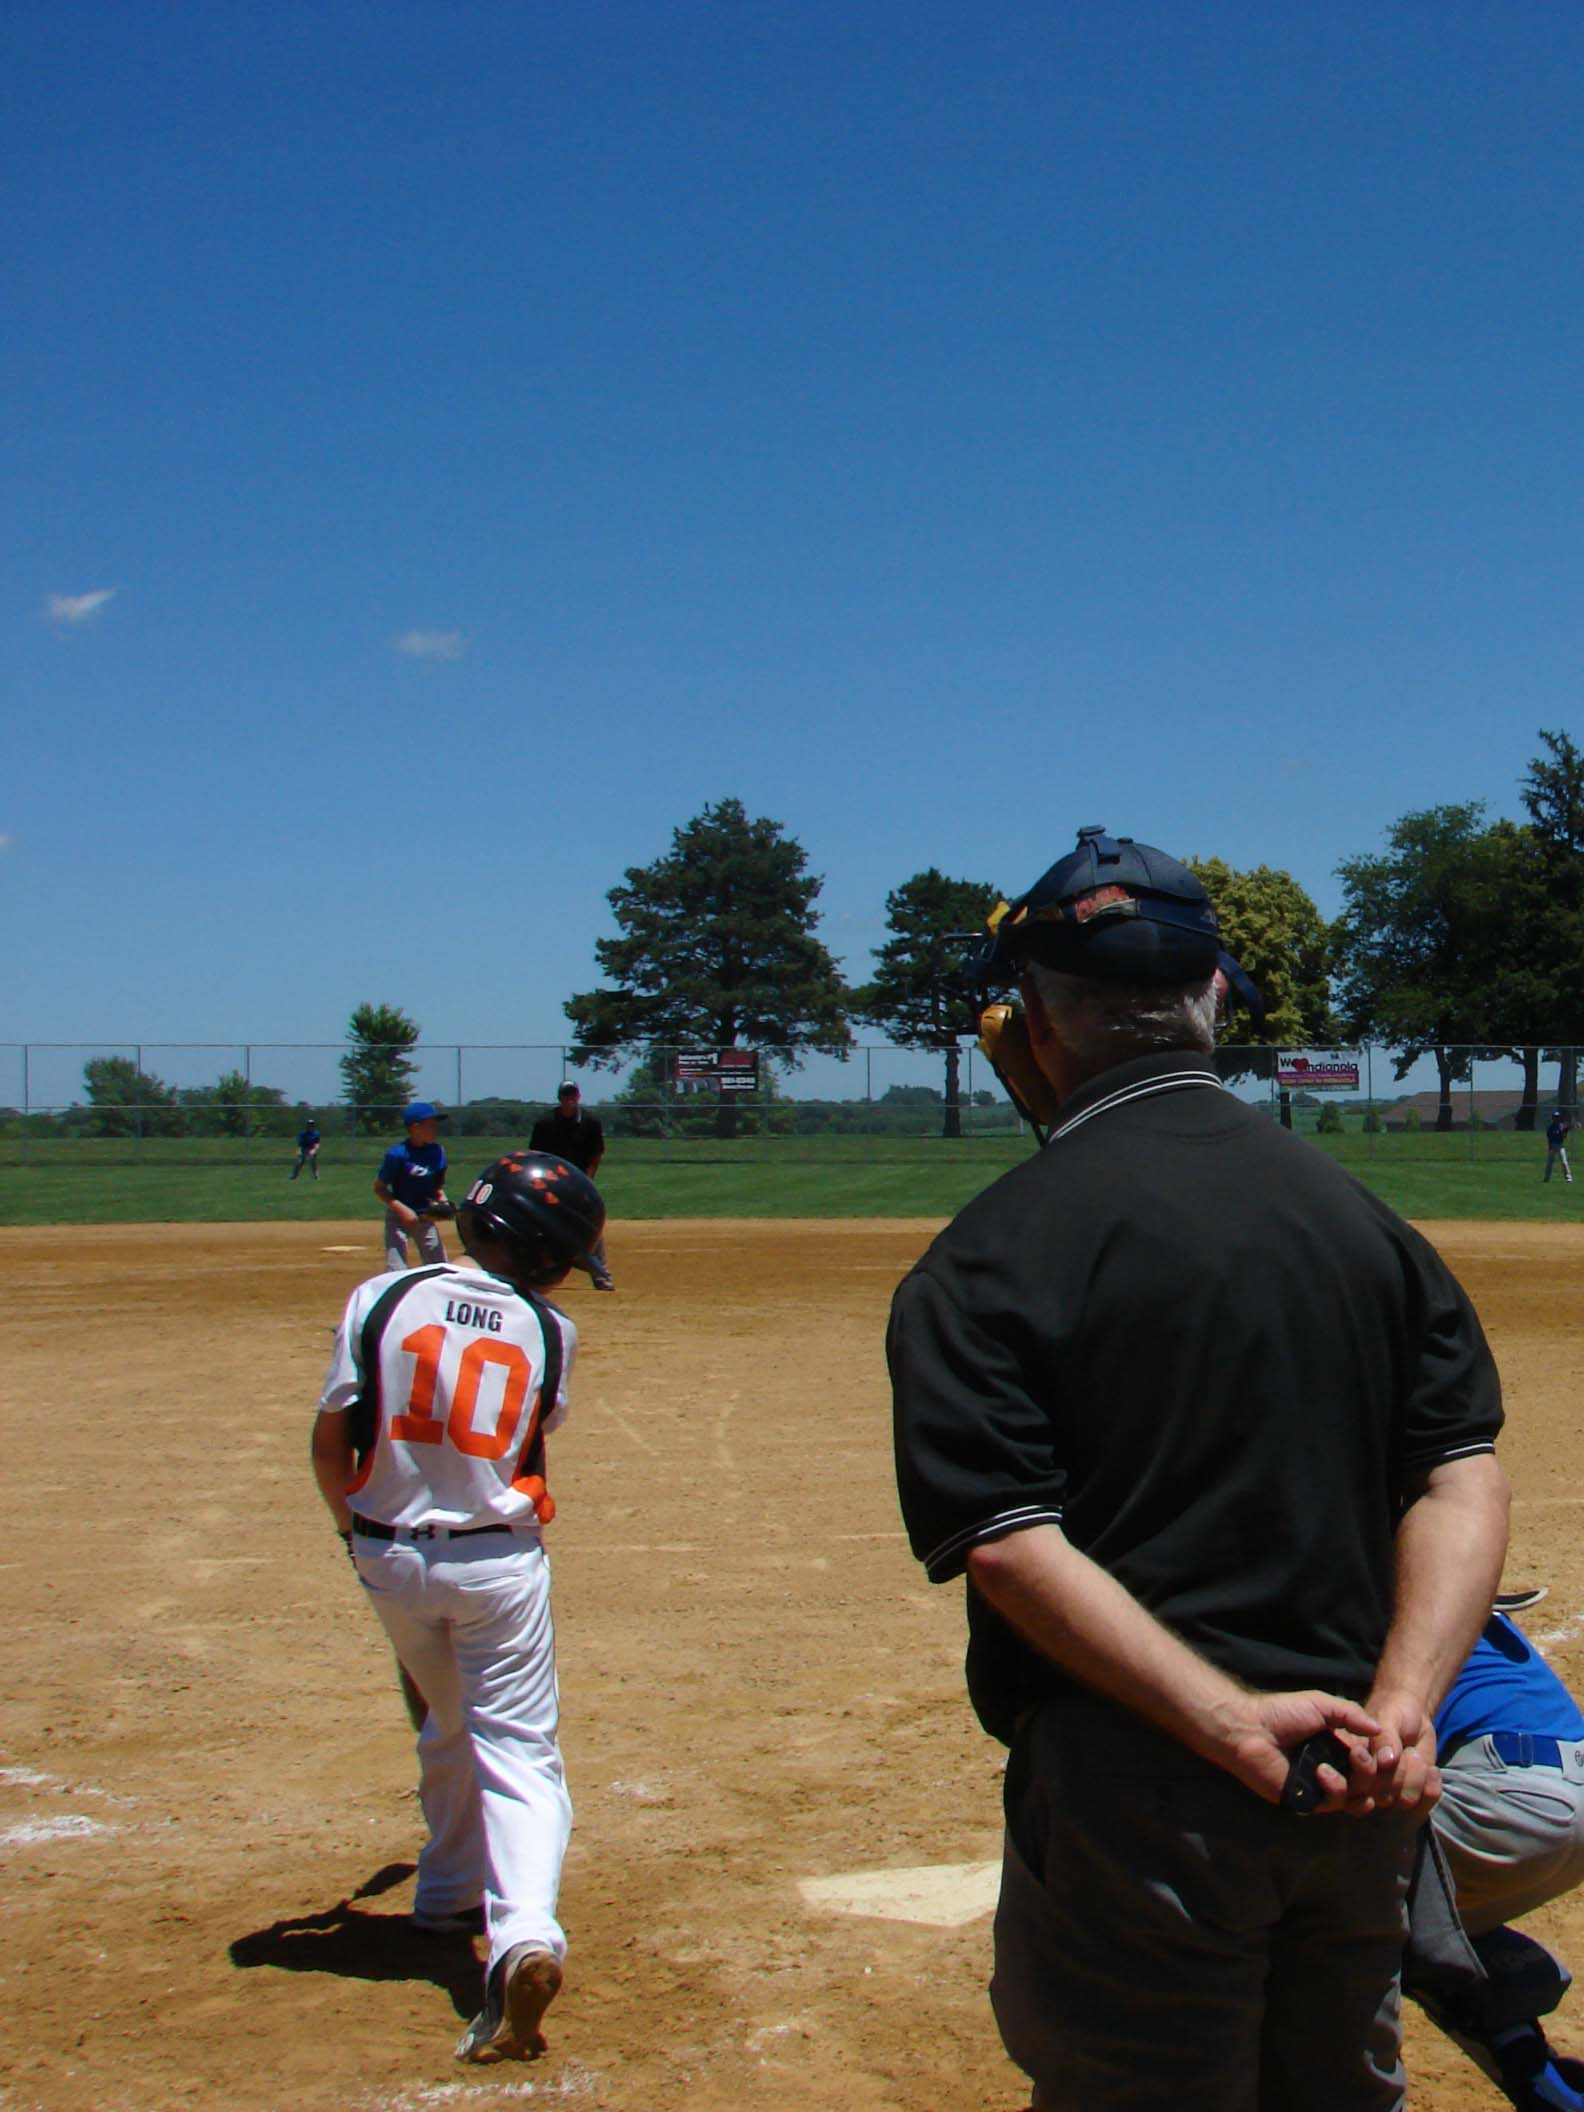 Umpire watches as boy swings during a game at Pickard Park Sports Complex